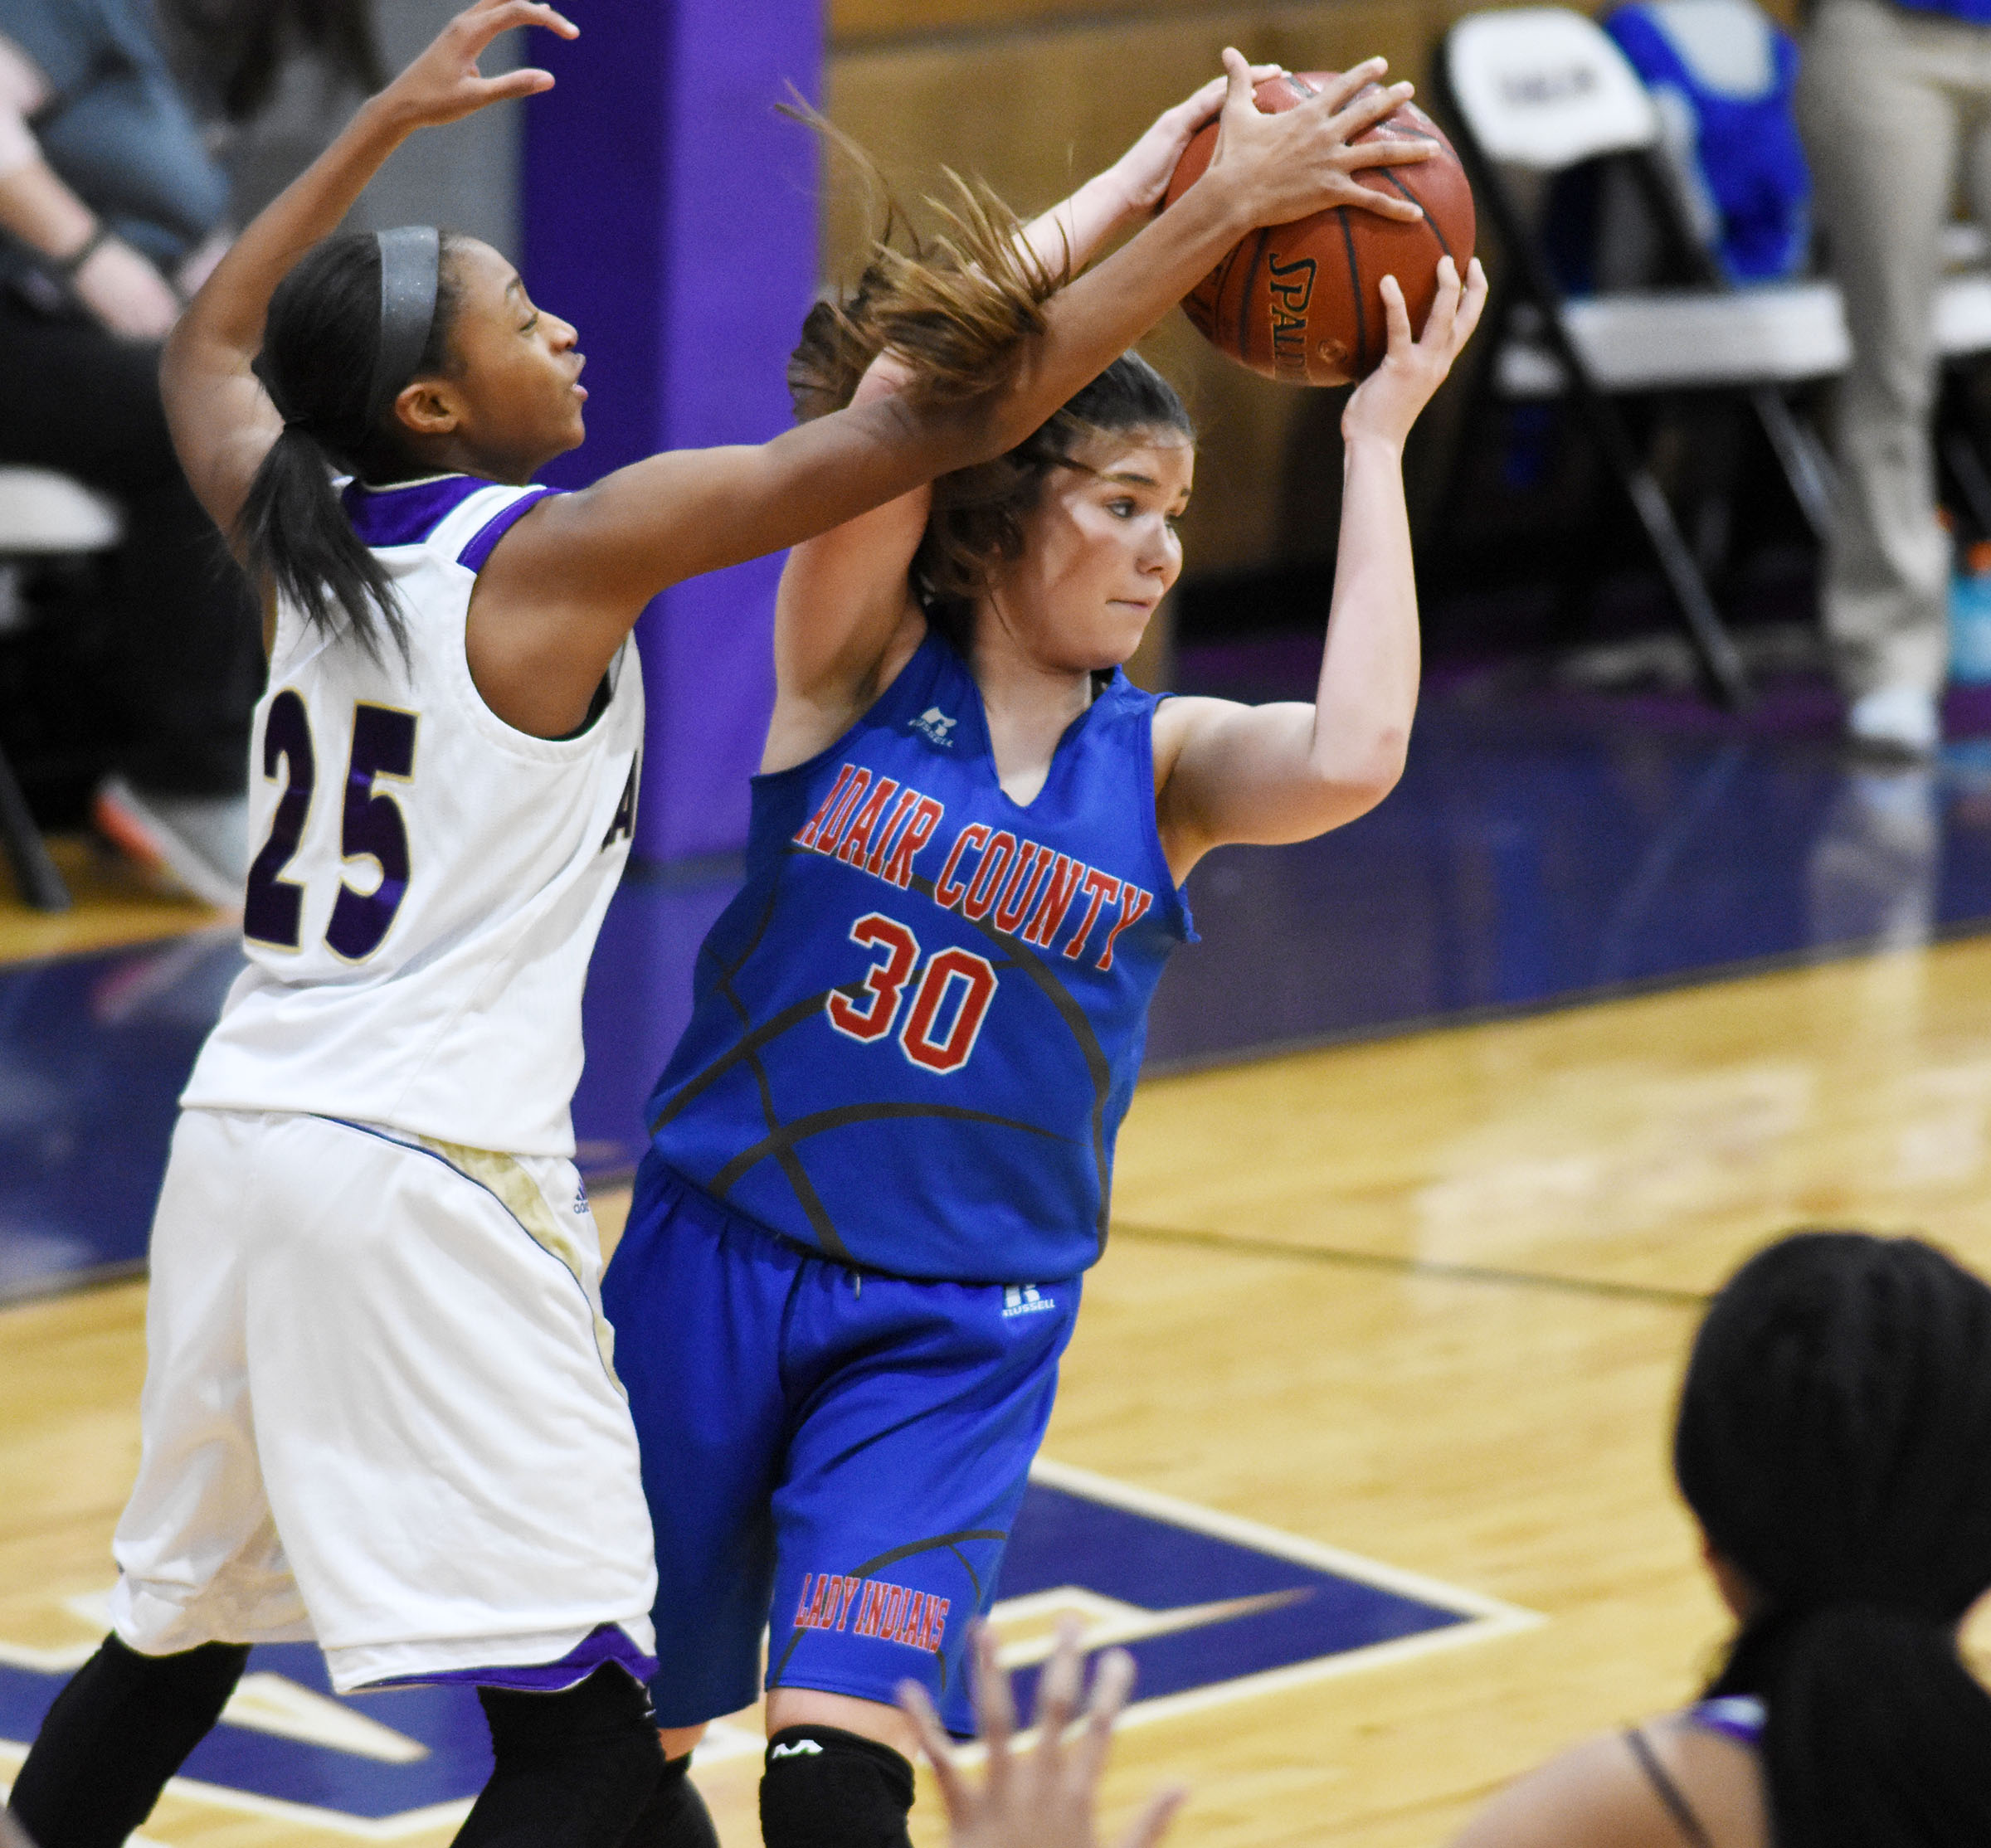 Campbellsville Middle School eighth-grader Bri Gowdy fights for the ball.